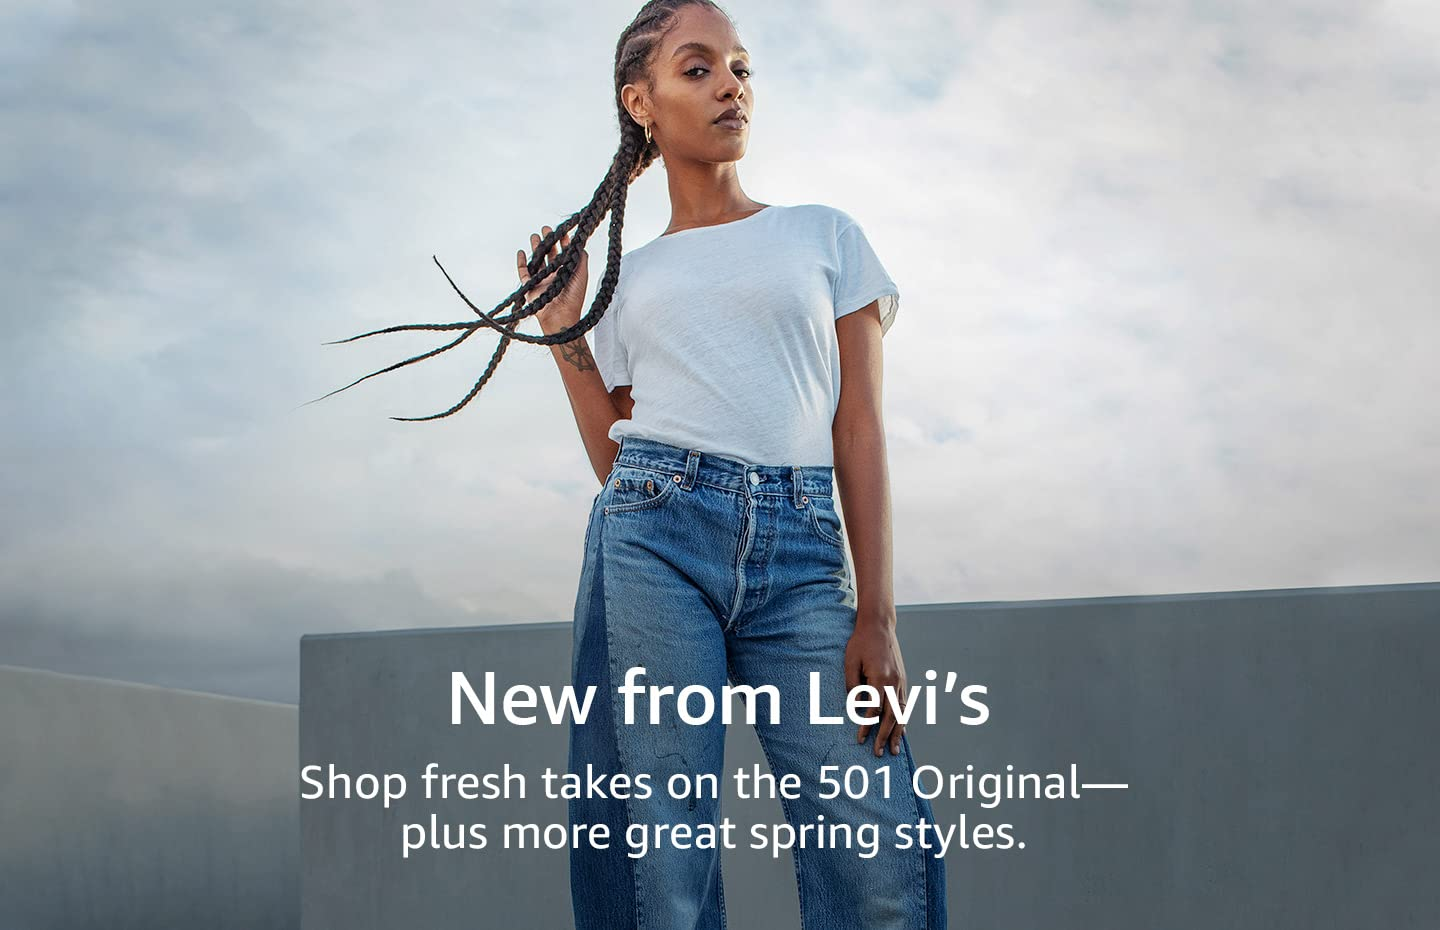 New from Levi's